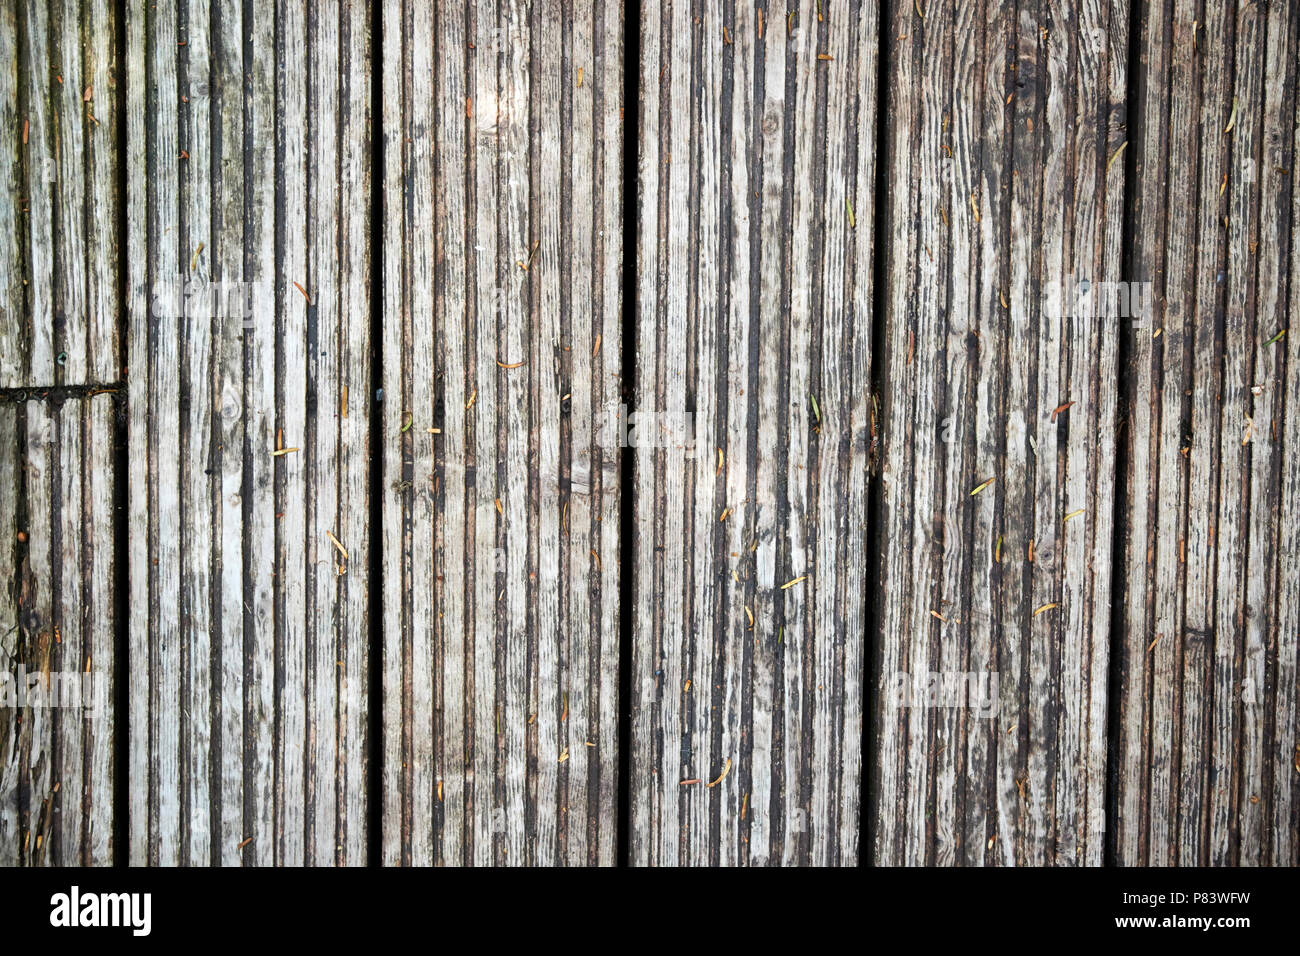 worn weathered wooden decking planks england uk - Stock Image